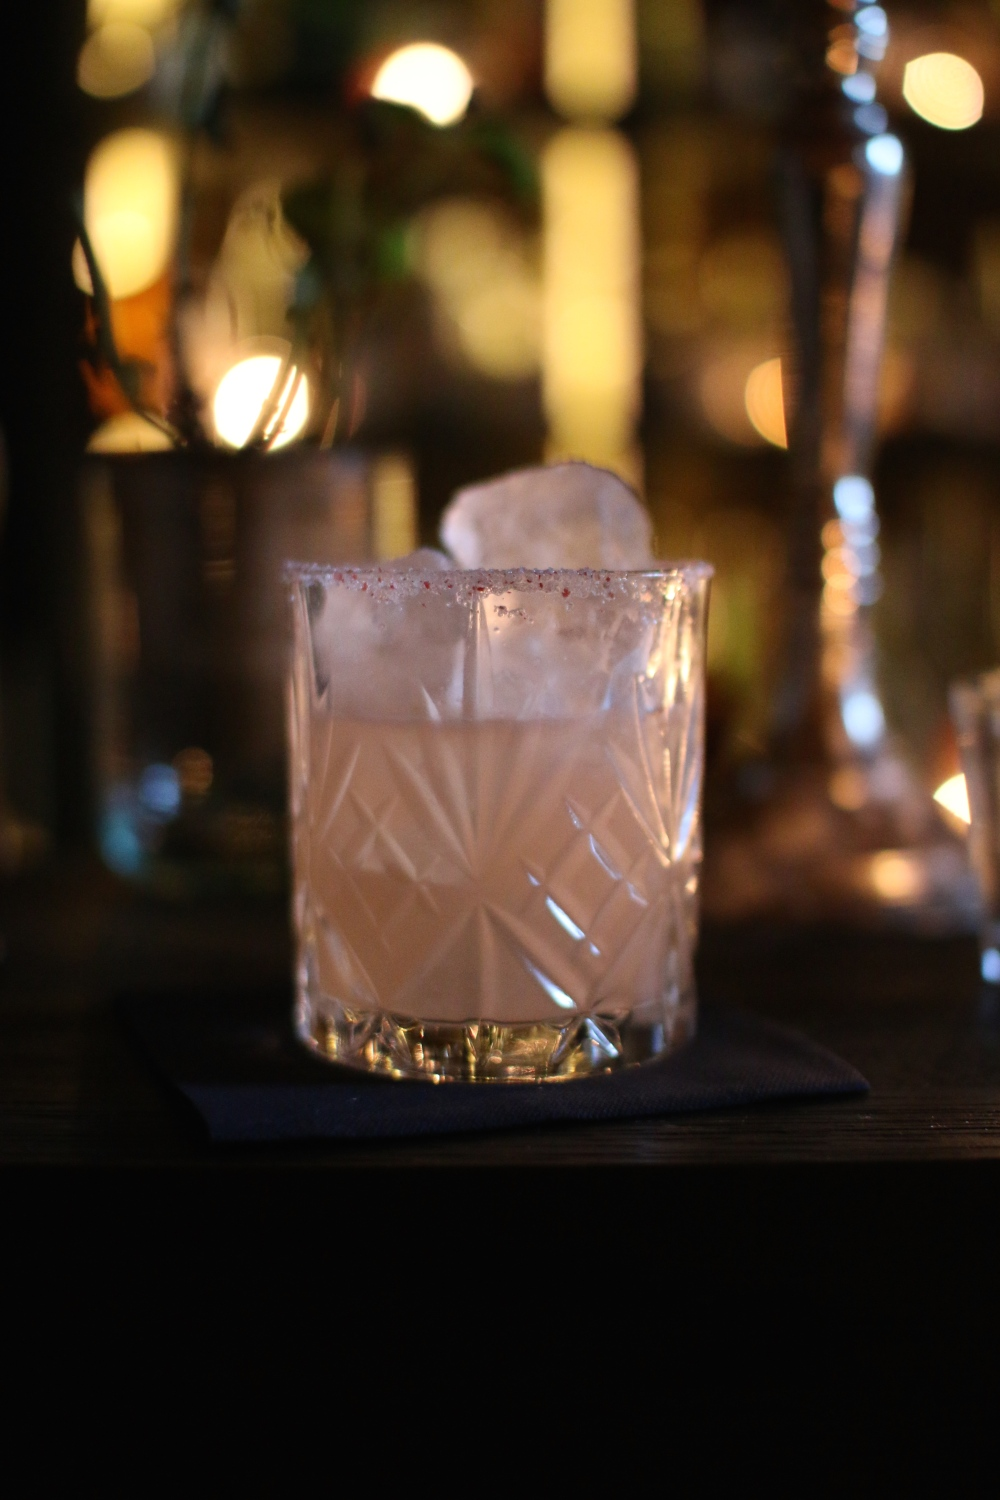 Pink Skull - Mezcal de la Vida, pink peppercorn syrup and grapefruit, salt & peppercorn rim on the glas.